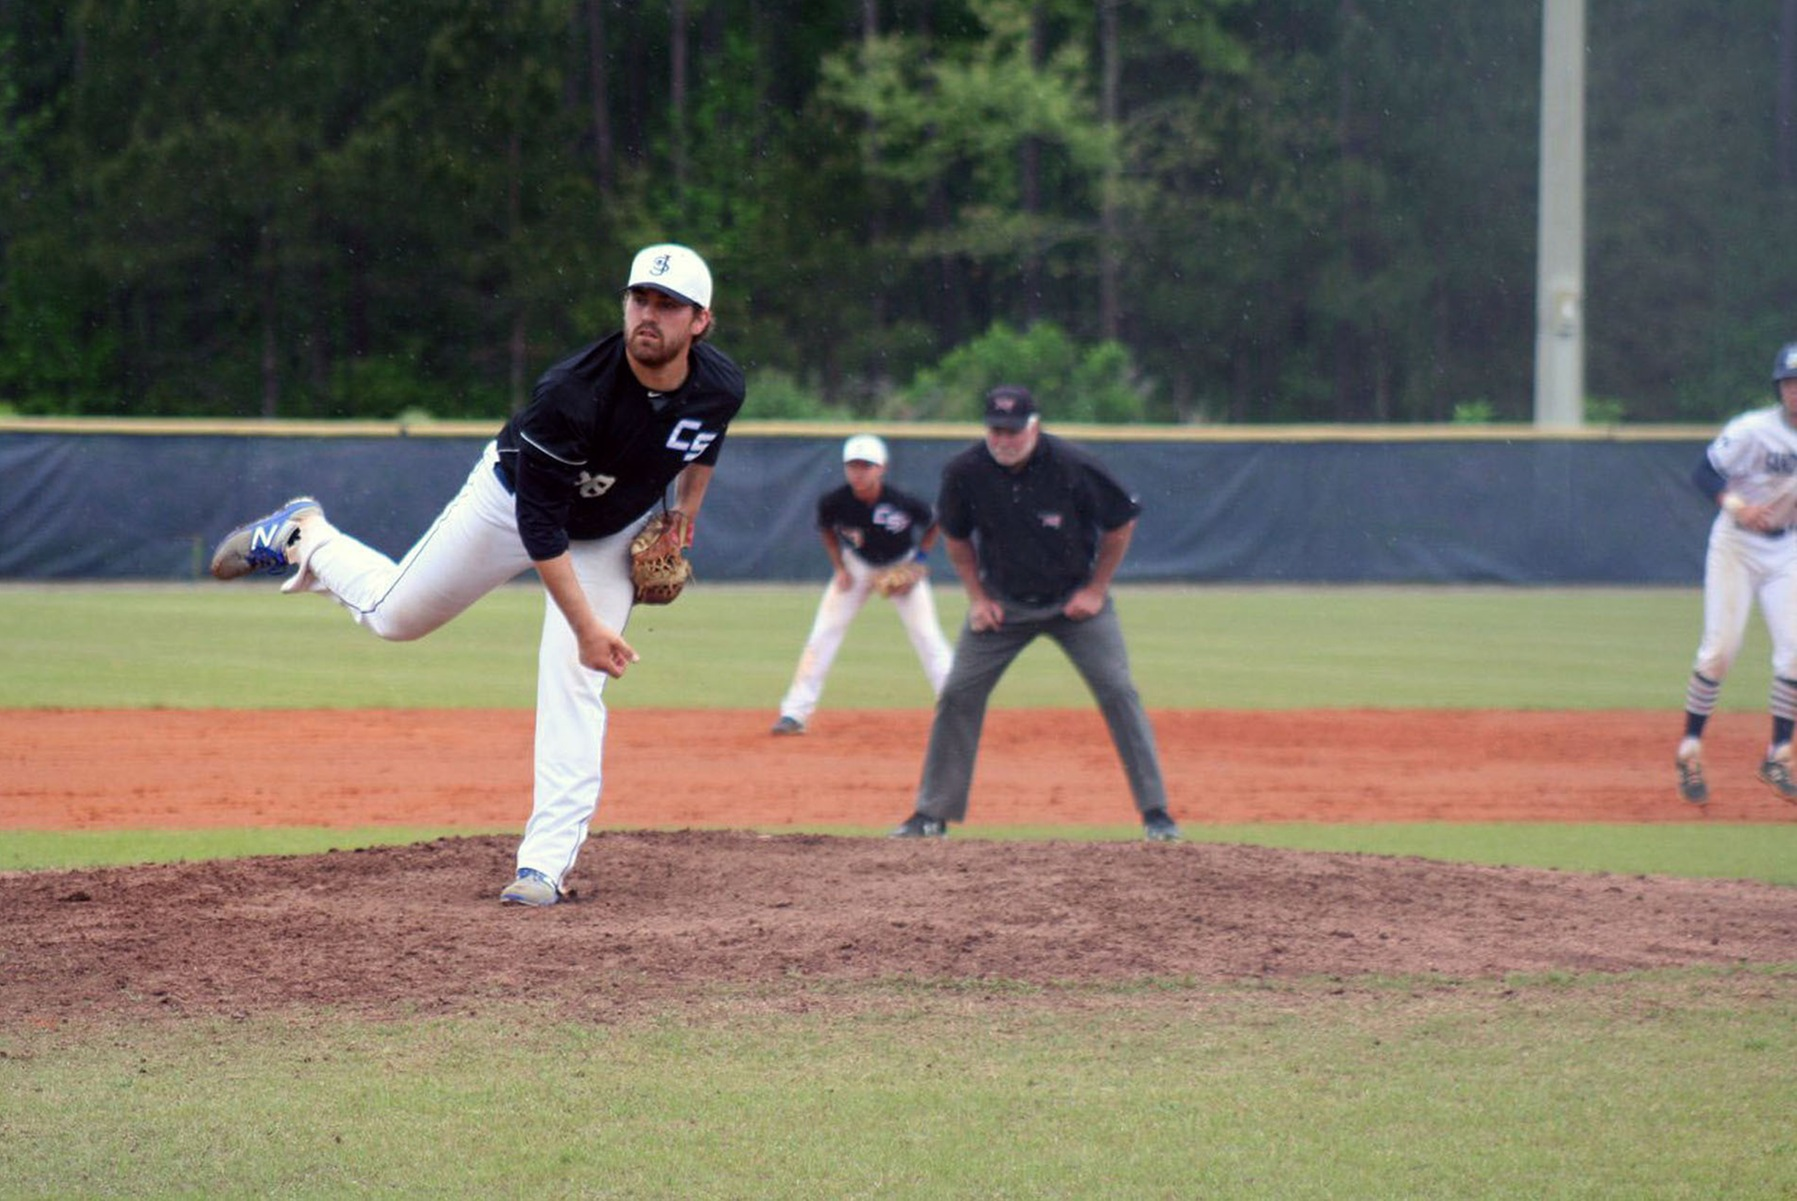 Sand Sharks edge Saints by one run